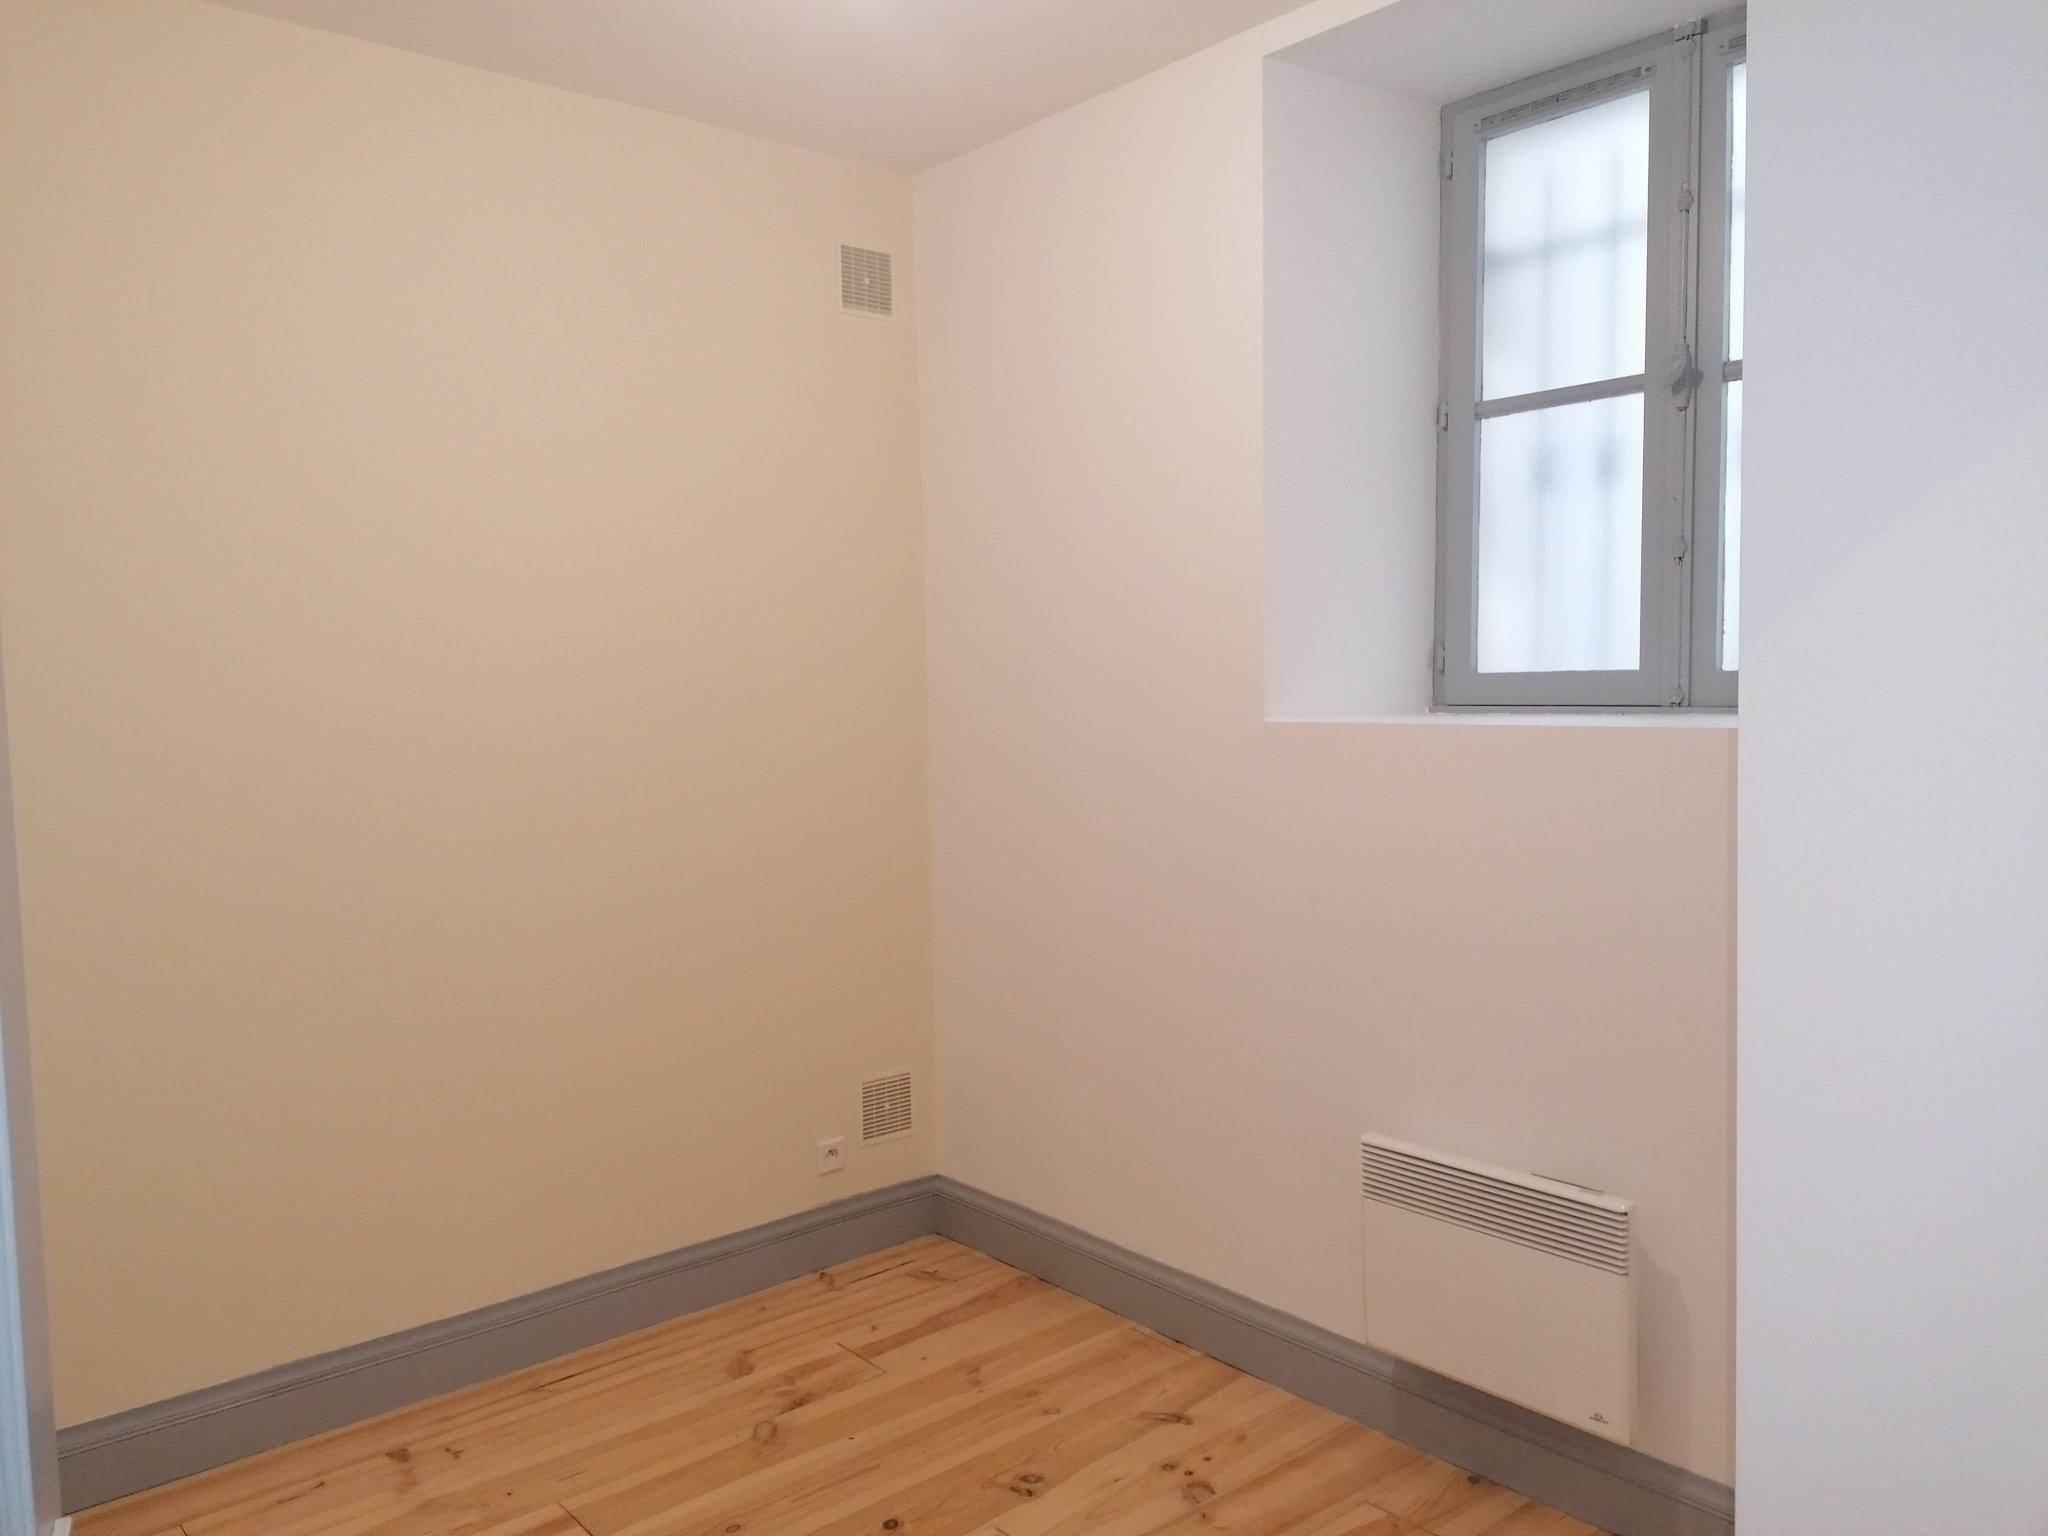 For sale flat3 rooms in BAYONNE - 8